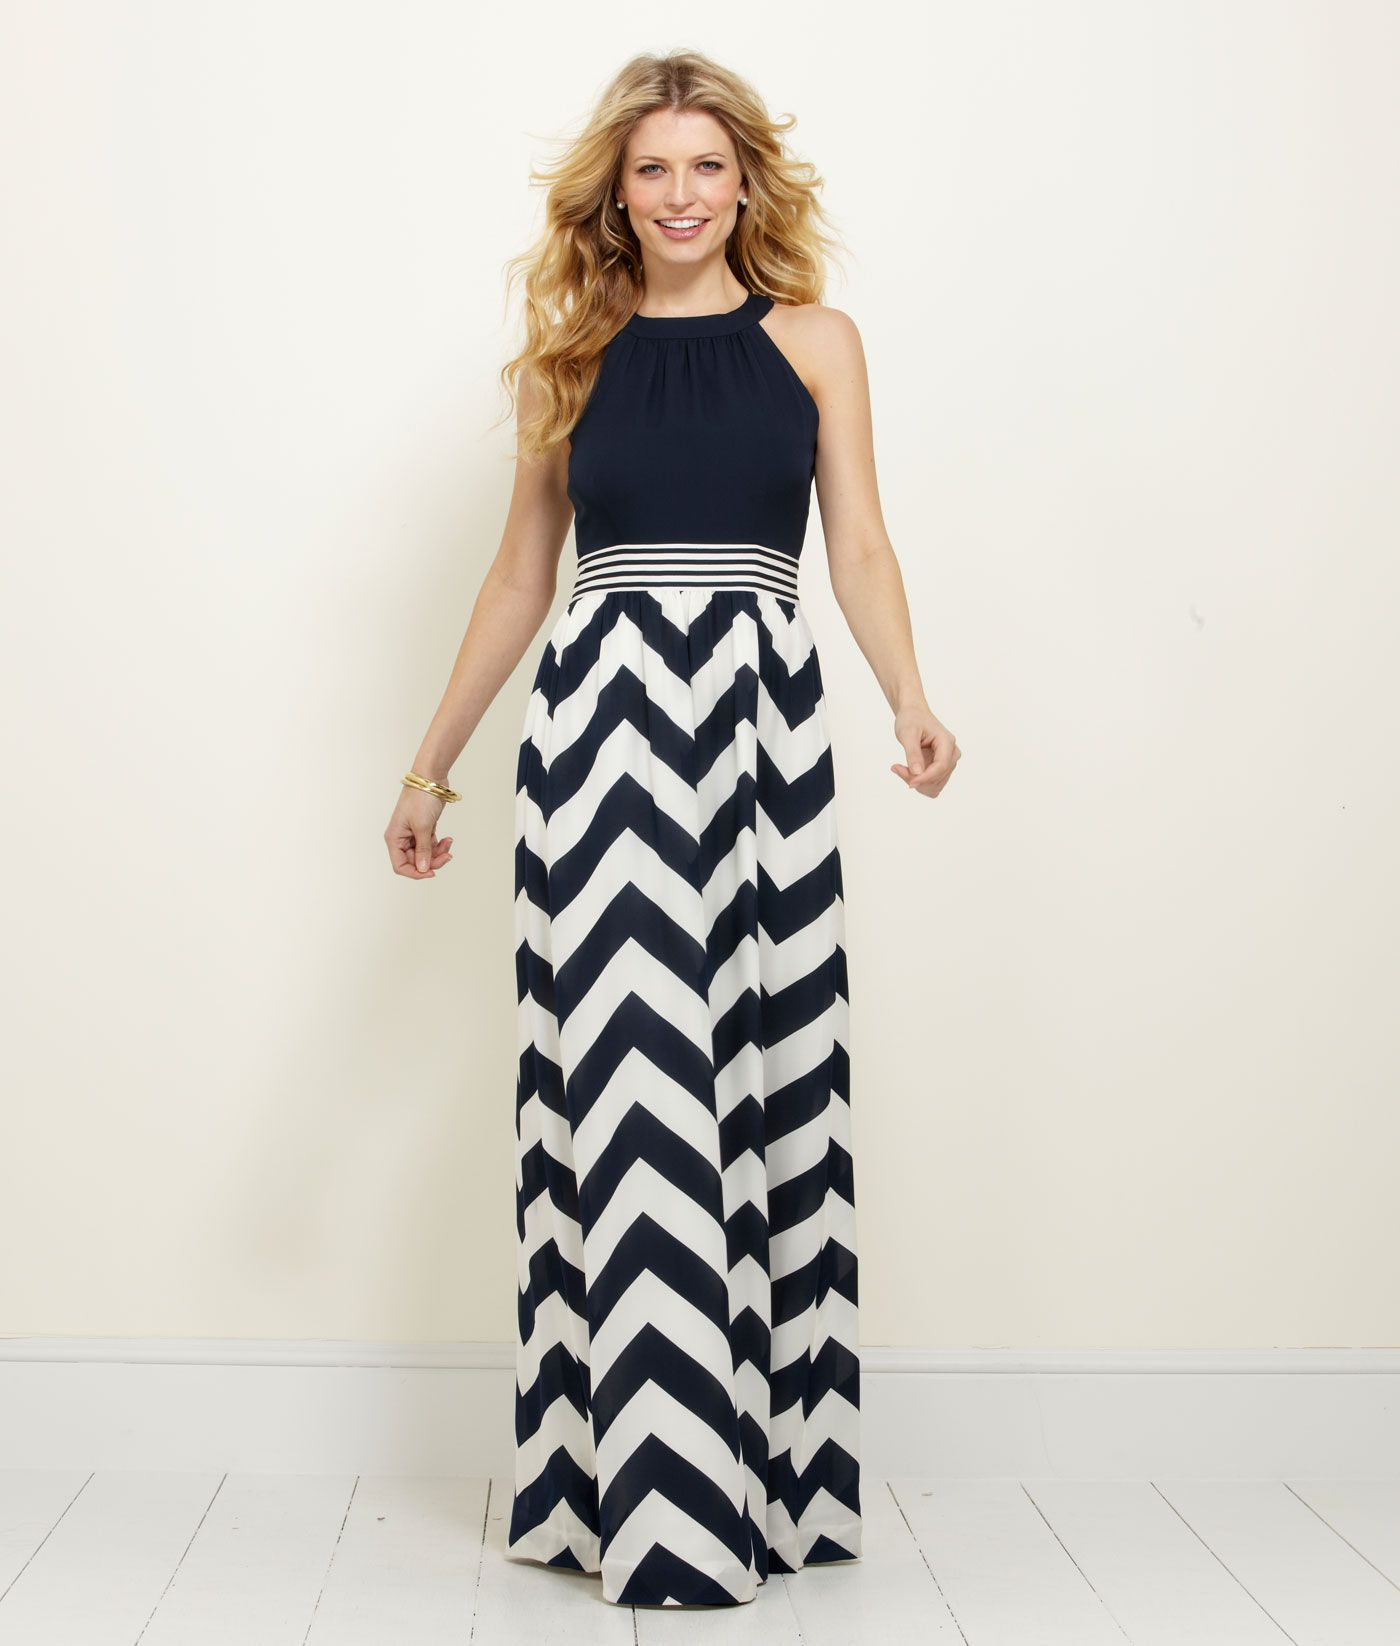 Womenus dresses chevron maxi dress u vineyard vines my style